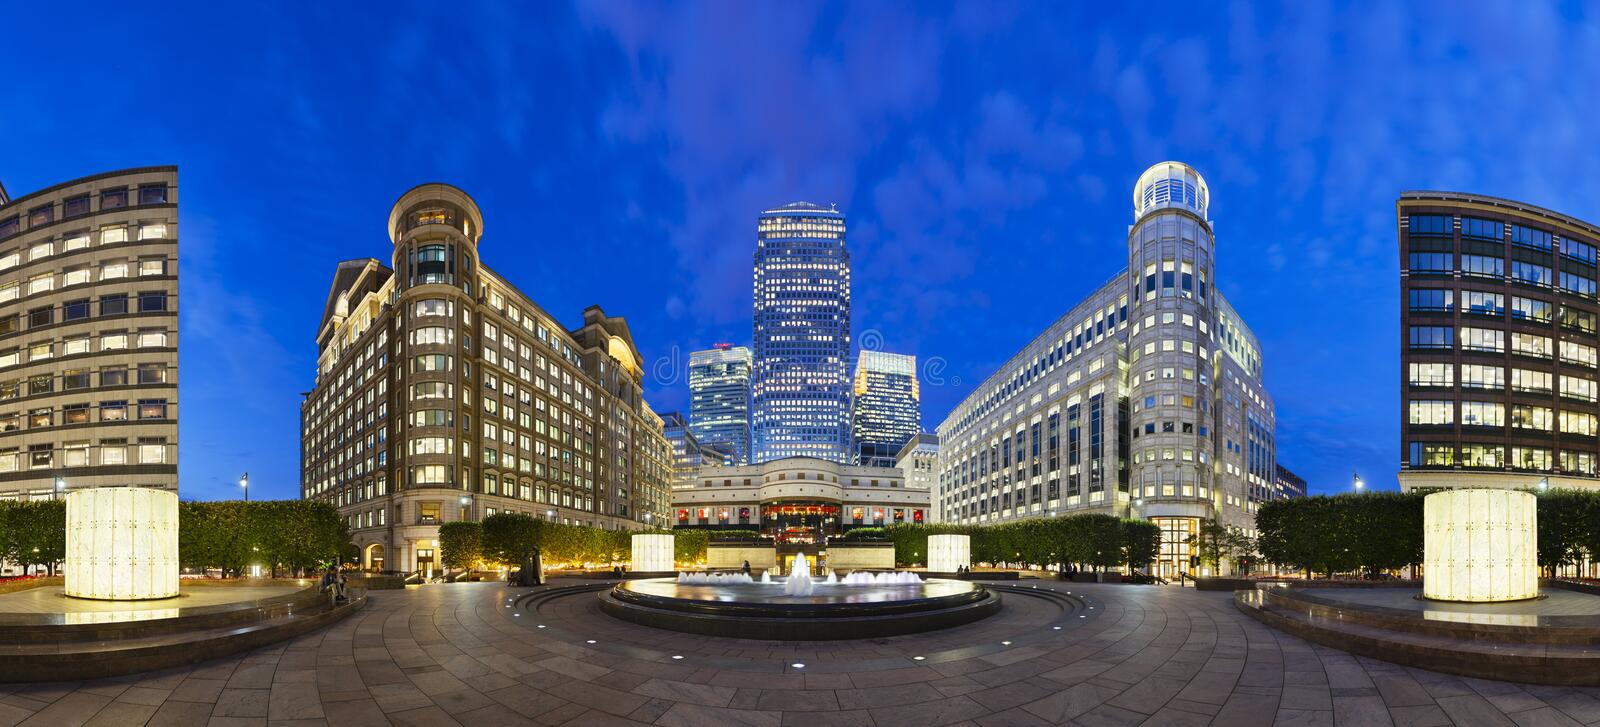 Cabot Square In London at night. Cabot Square panorama in the modern Canary Wharf quarter with its banks and skyscrapers at night royalty free stock photo